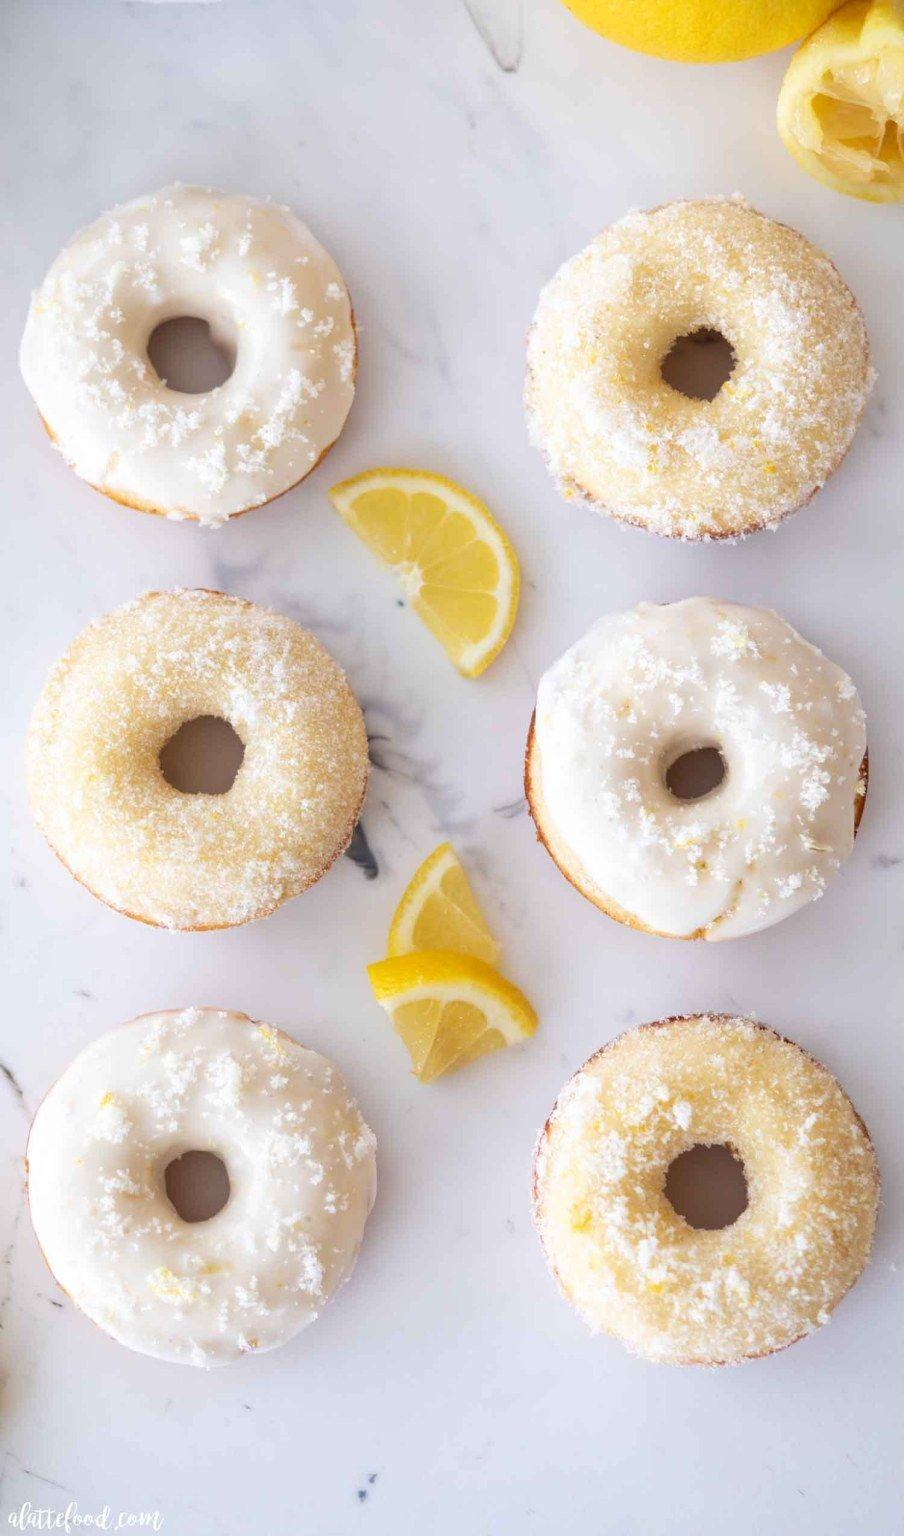 This Baked Lemon Donuts Recipe Is Topped With A Lemon Glaze Or It Can Be Topped With Lemon Sugar Like Cinna In 2020 Donut Recipes Easy Donut Recipe Buttermilk Recipes